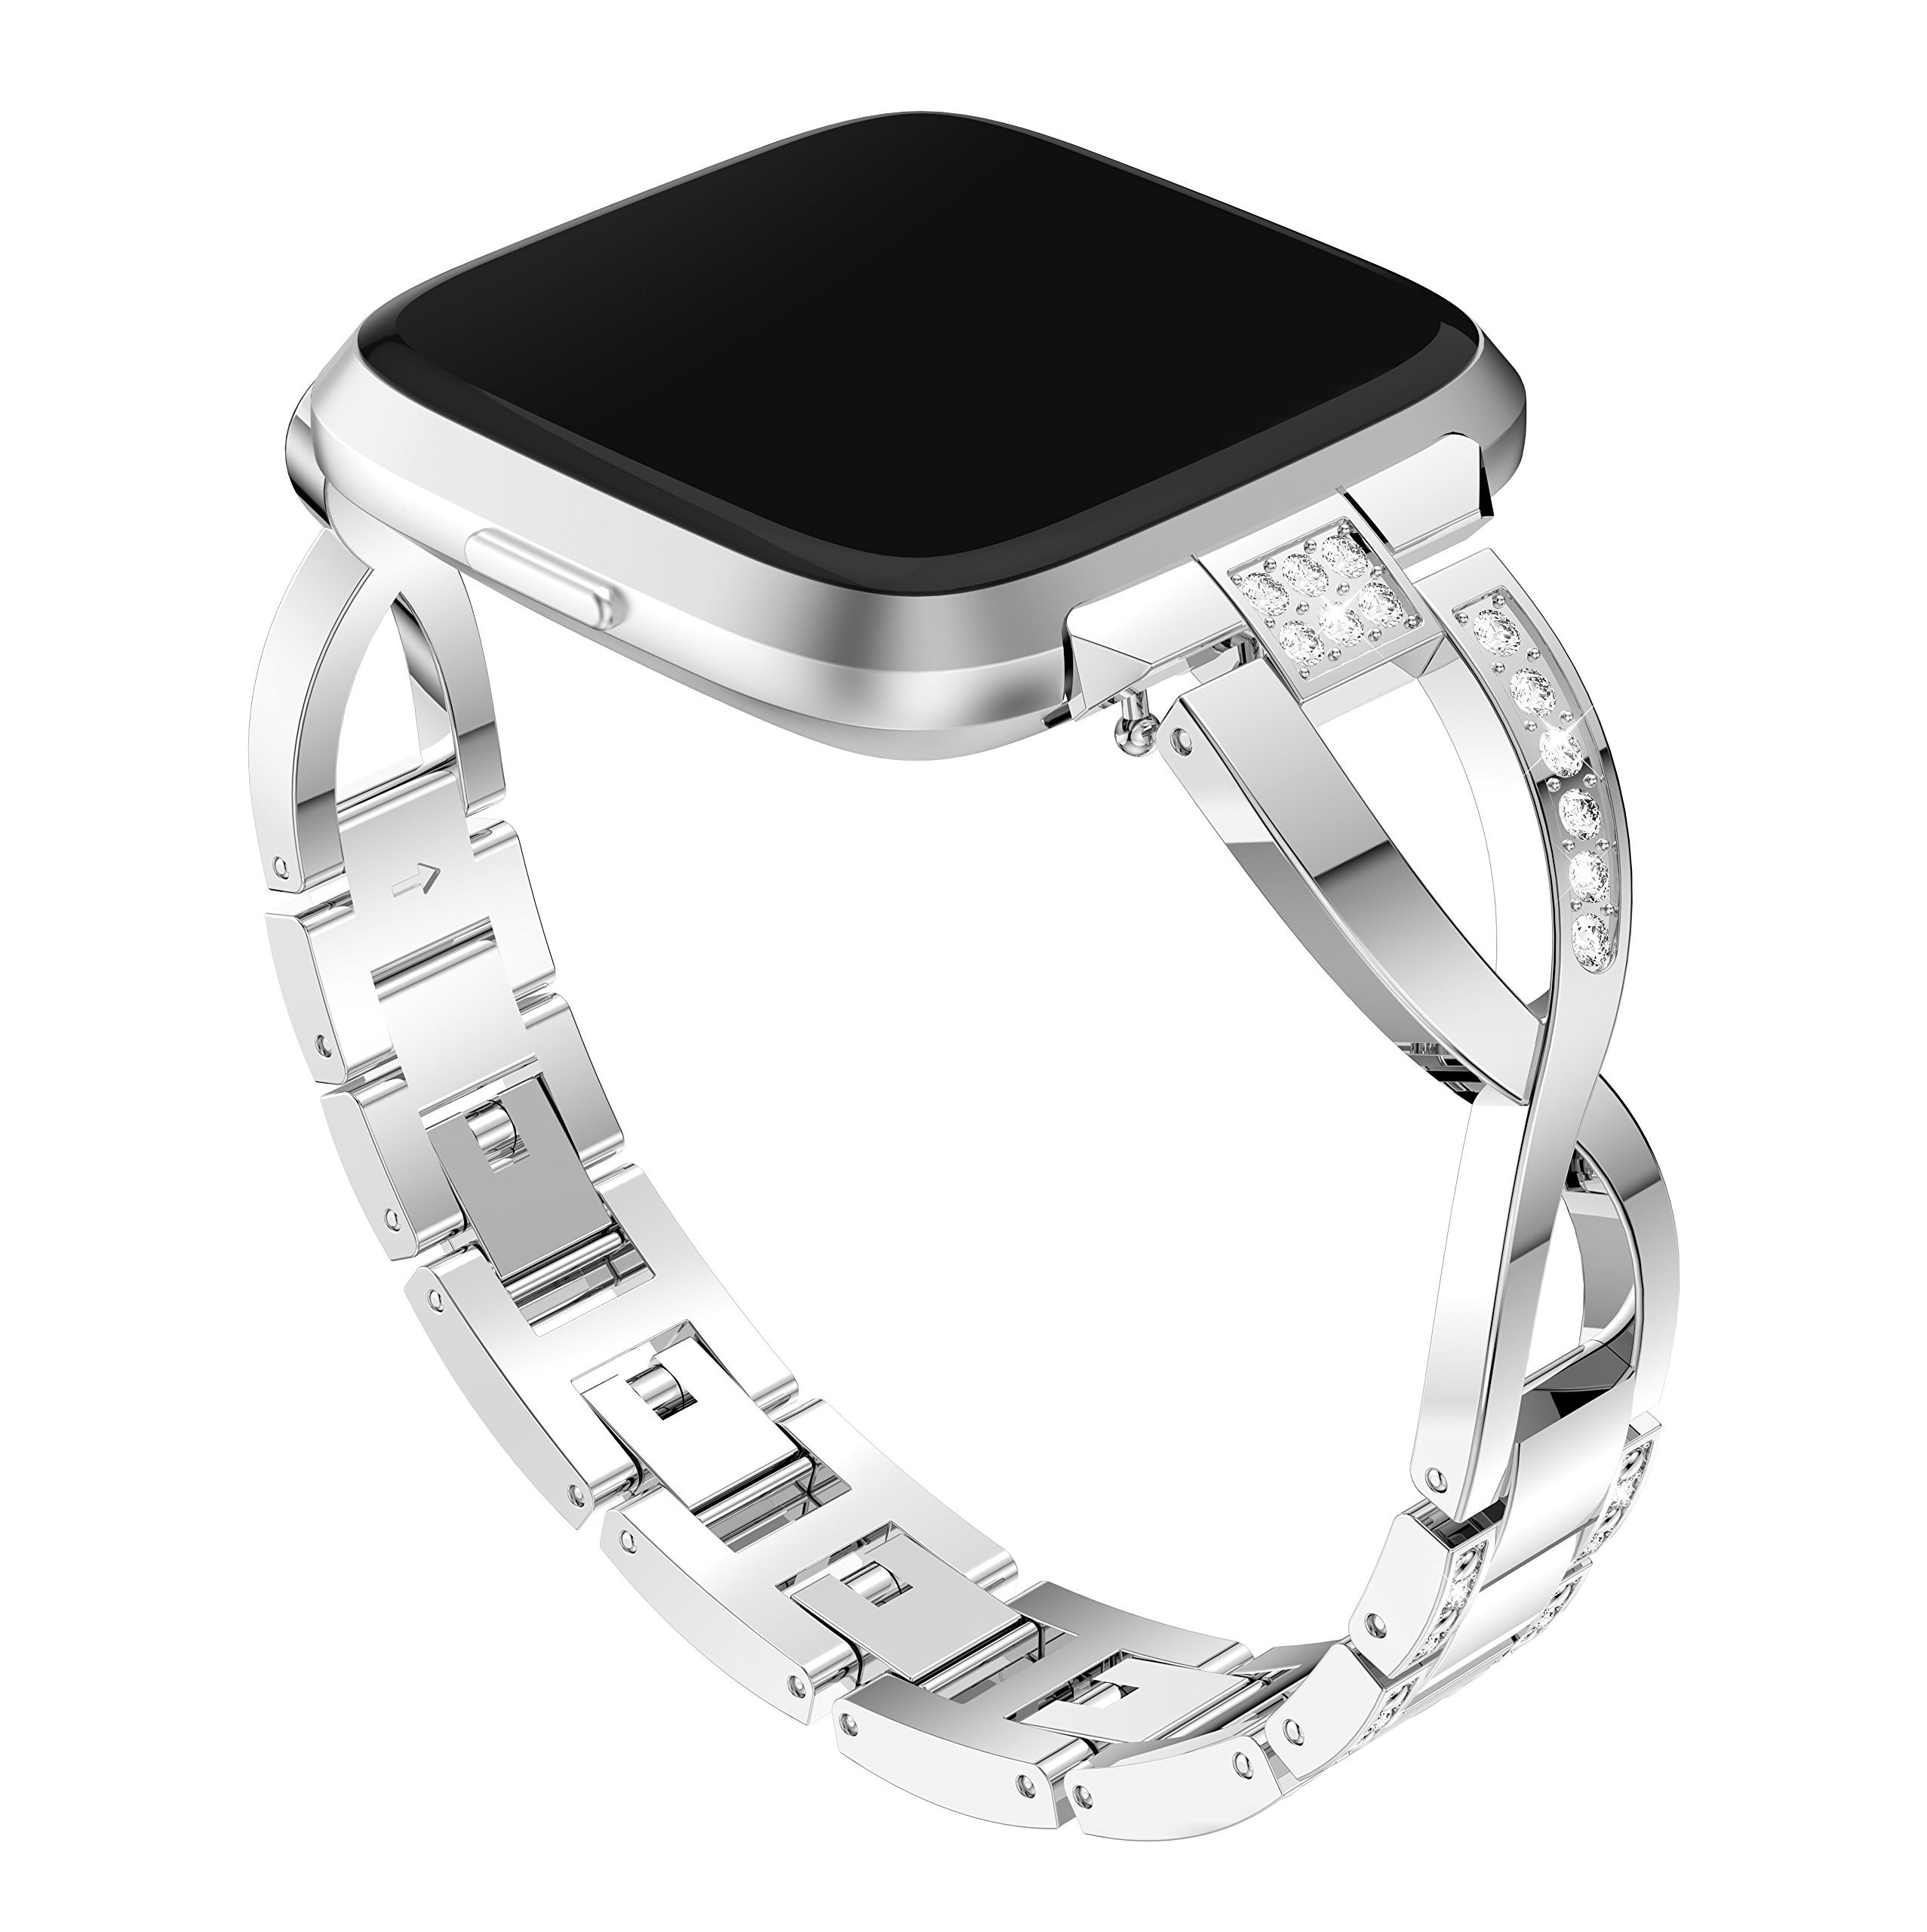 patrohoo For Fitbit Versa Metal bands, Replacement Assesories Straps for Fitbit Versa Women/Men Silver Rose Gold Black(Silver)